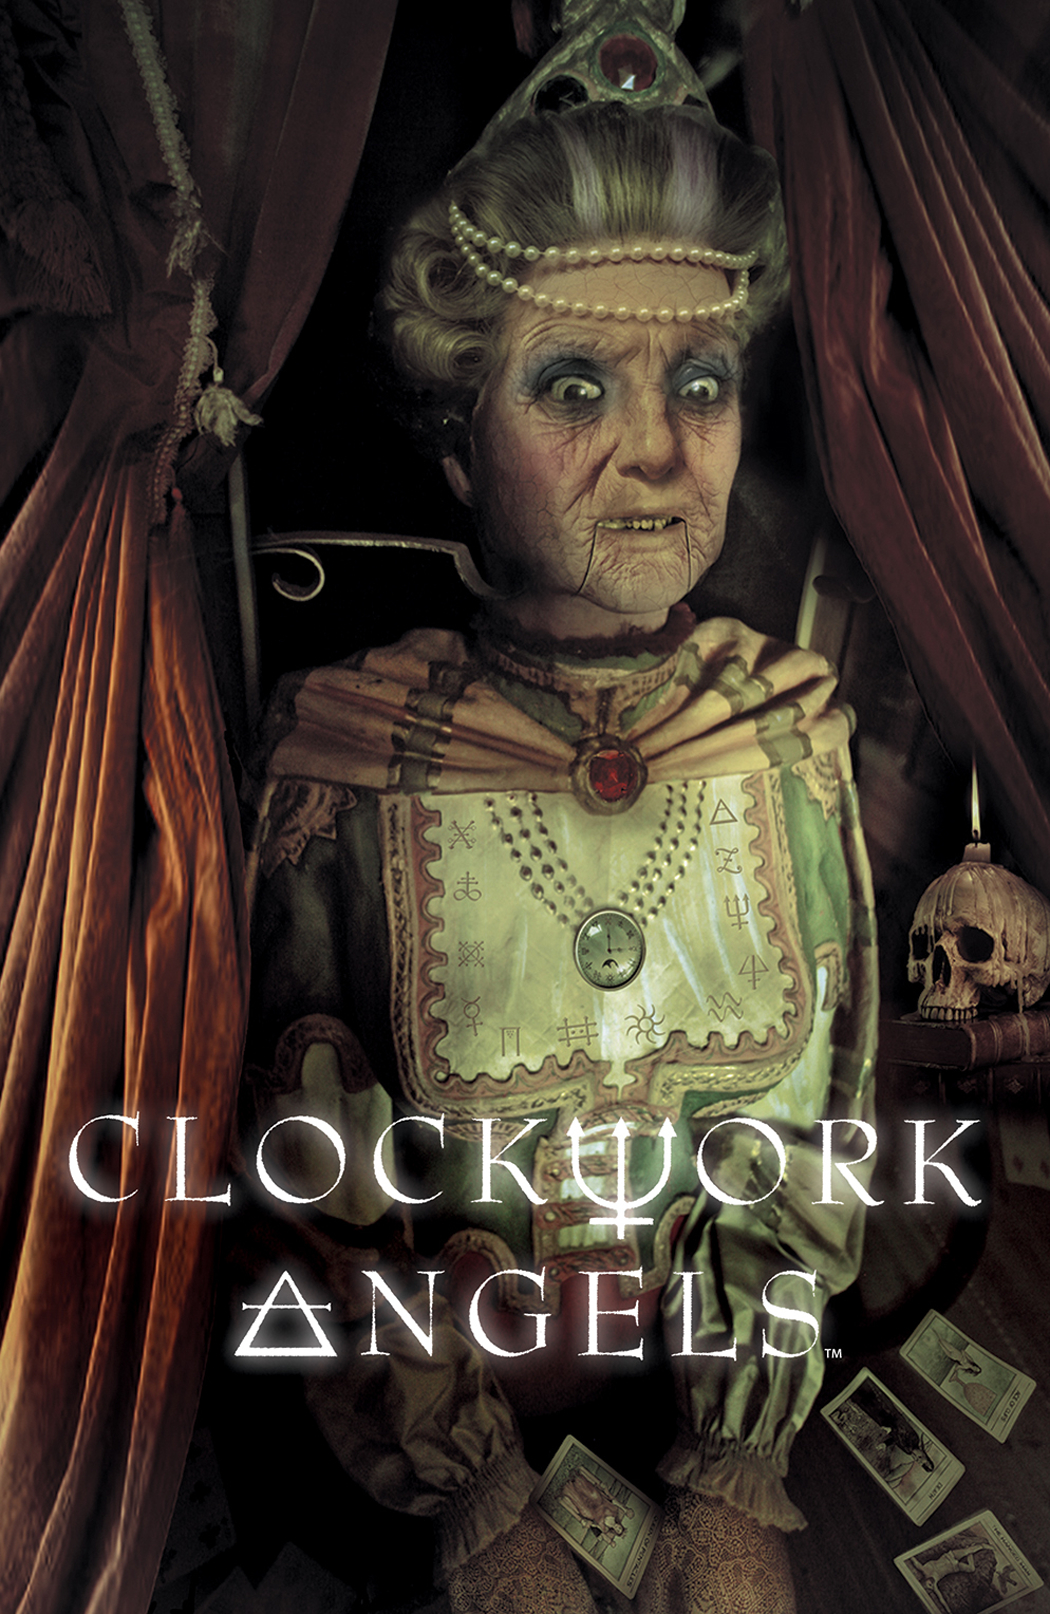 RUSH CLOCKWORK ANGELS #3